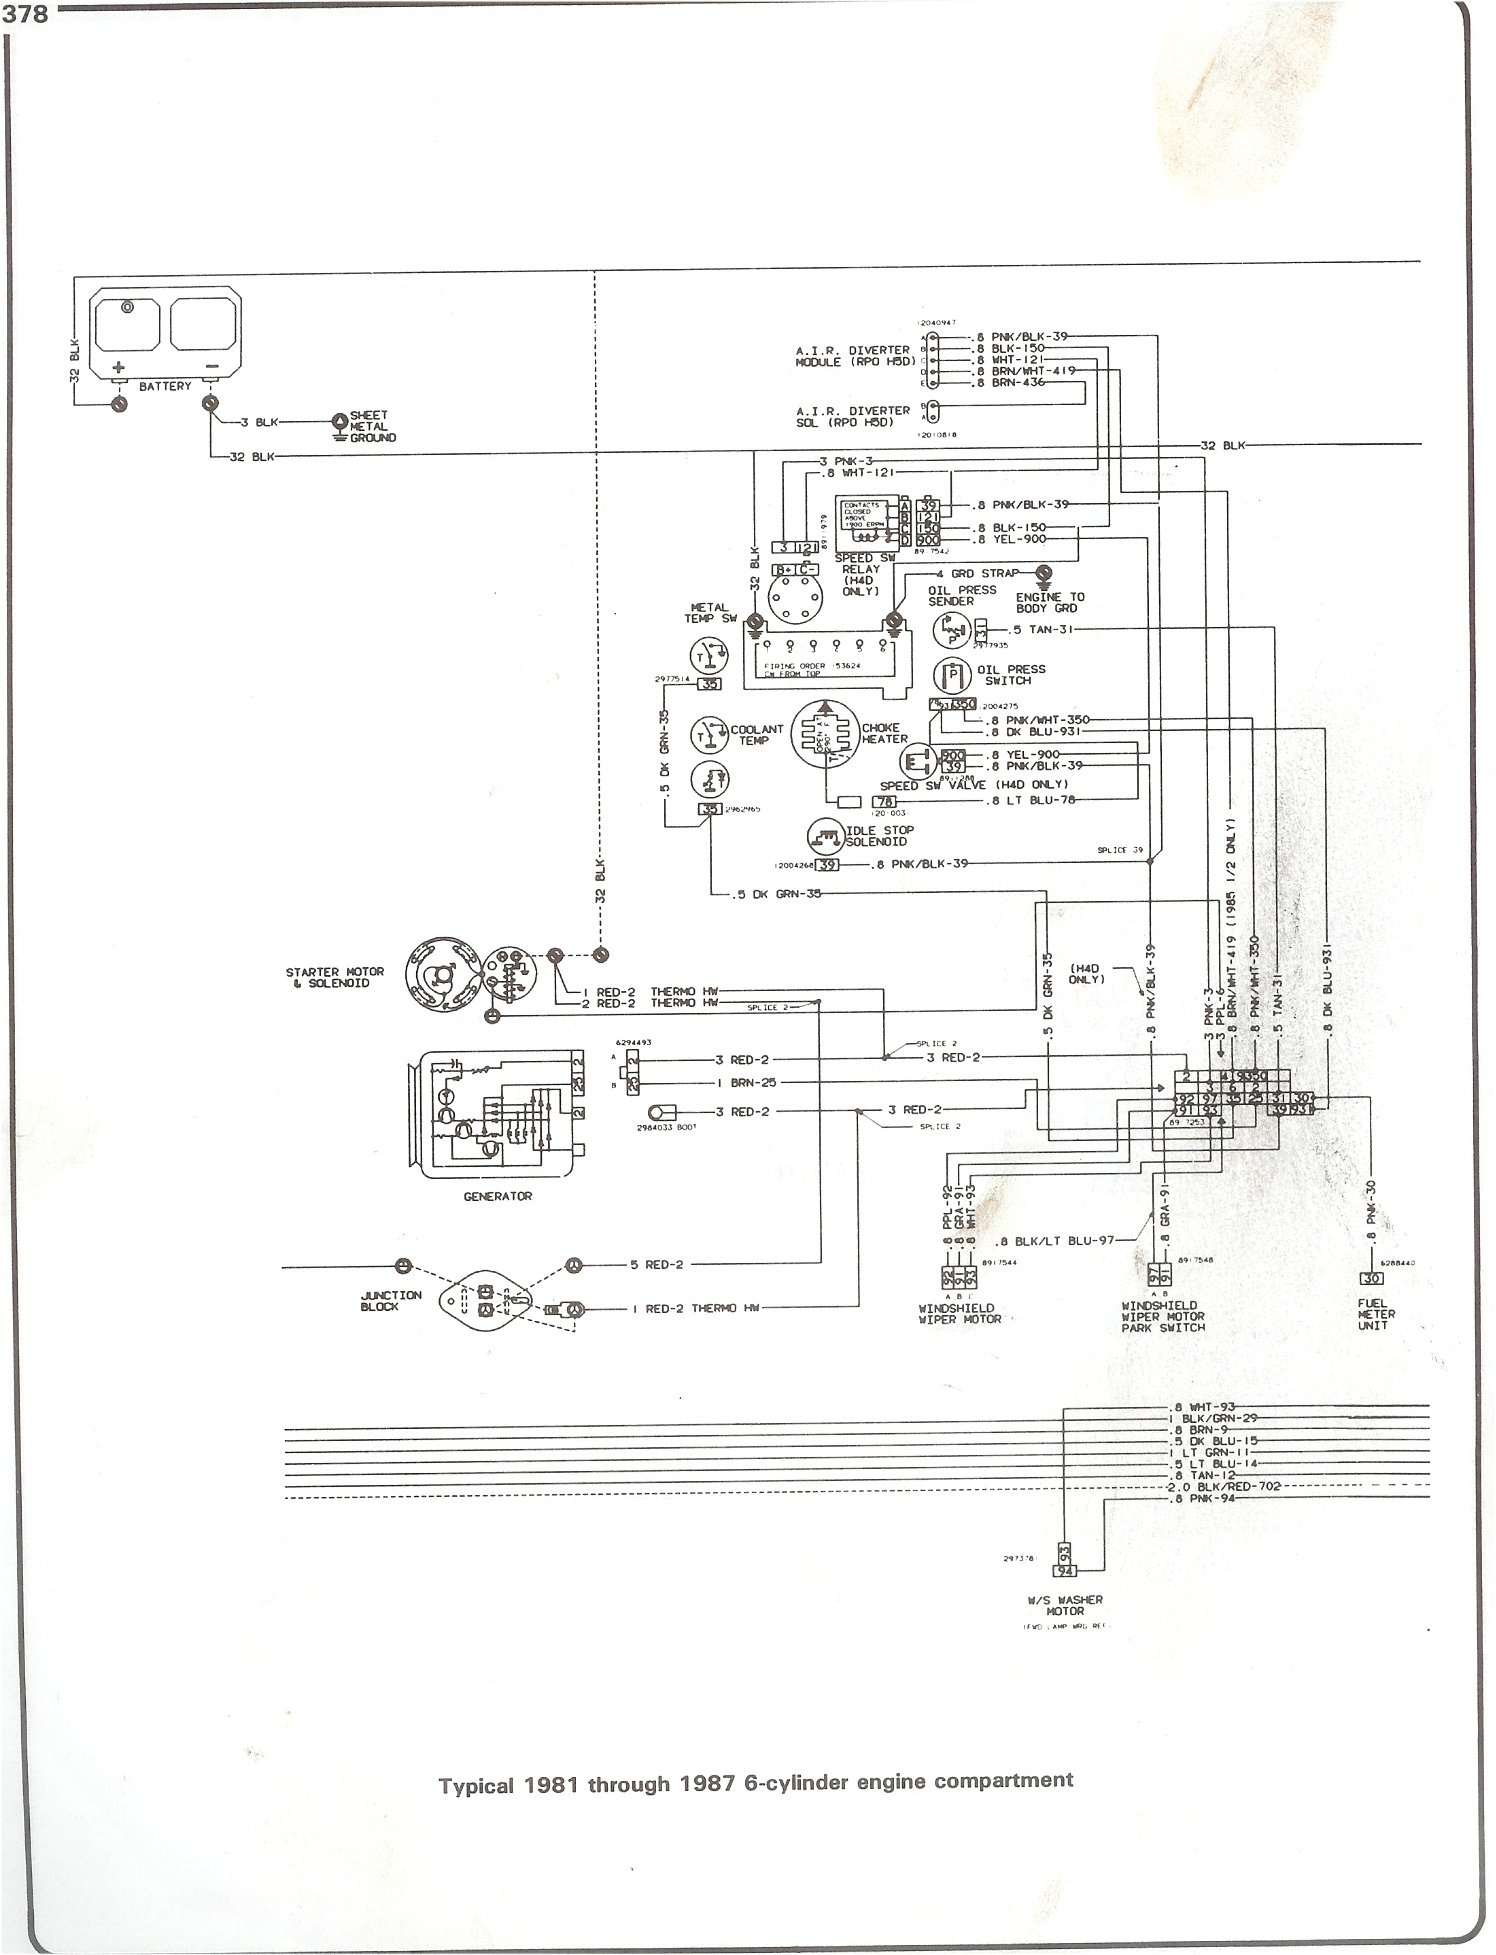 Complete 73-87 Wiring Diagrams73-87chevytrucks.com